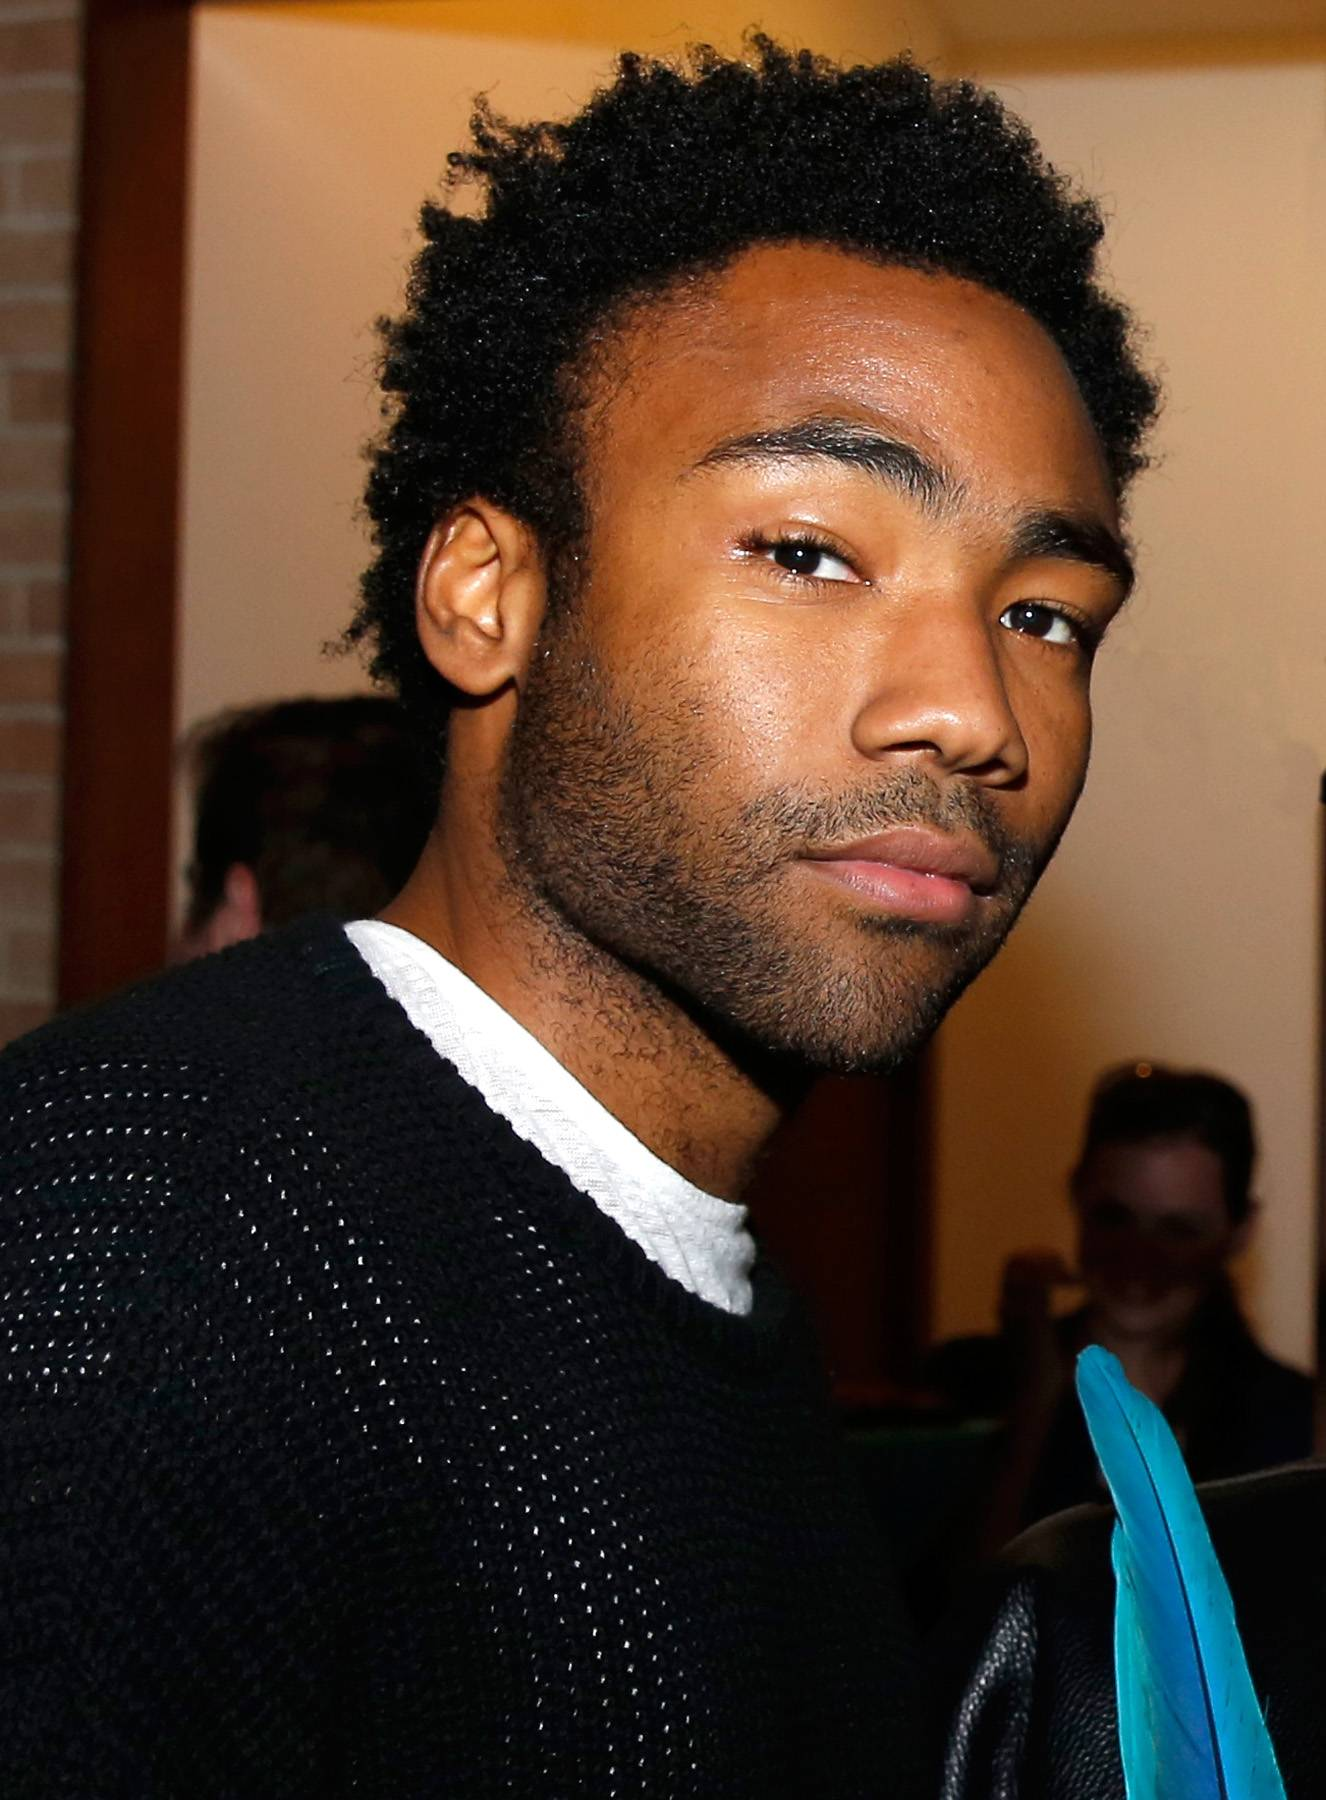 """Childish Gambino vs. Glassnote Records - Childish Gambinovoiced his issues with Glassnote Records in April andposted his frustrations on Twitter and even asked for Atlantic or Def Jam Records to pick him up. Apparently, Glassnote did not follow through on the creative rollout he had in mind for his video, """"Sweatpants,"""" and new website.(Photo: Rick Kern/Getty Images for Samsung)"""